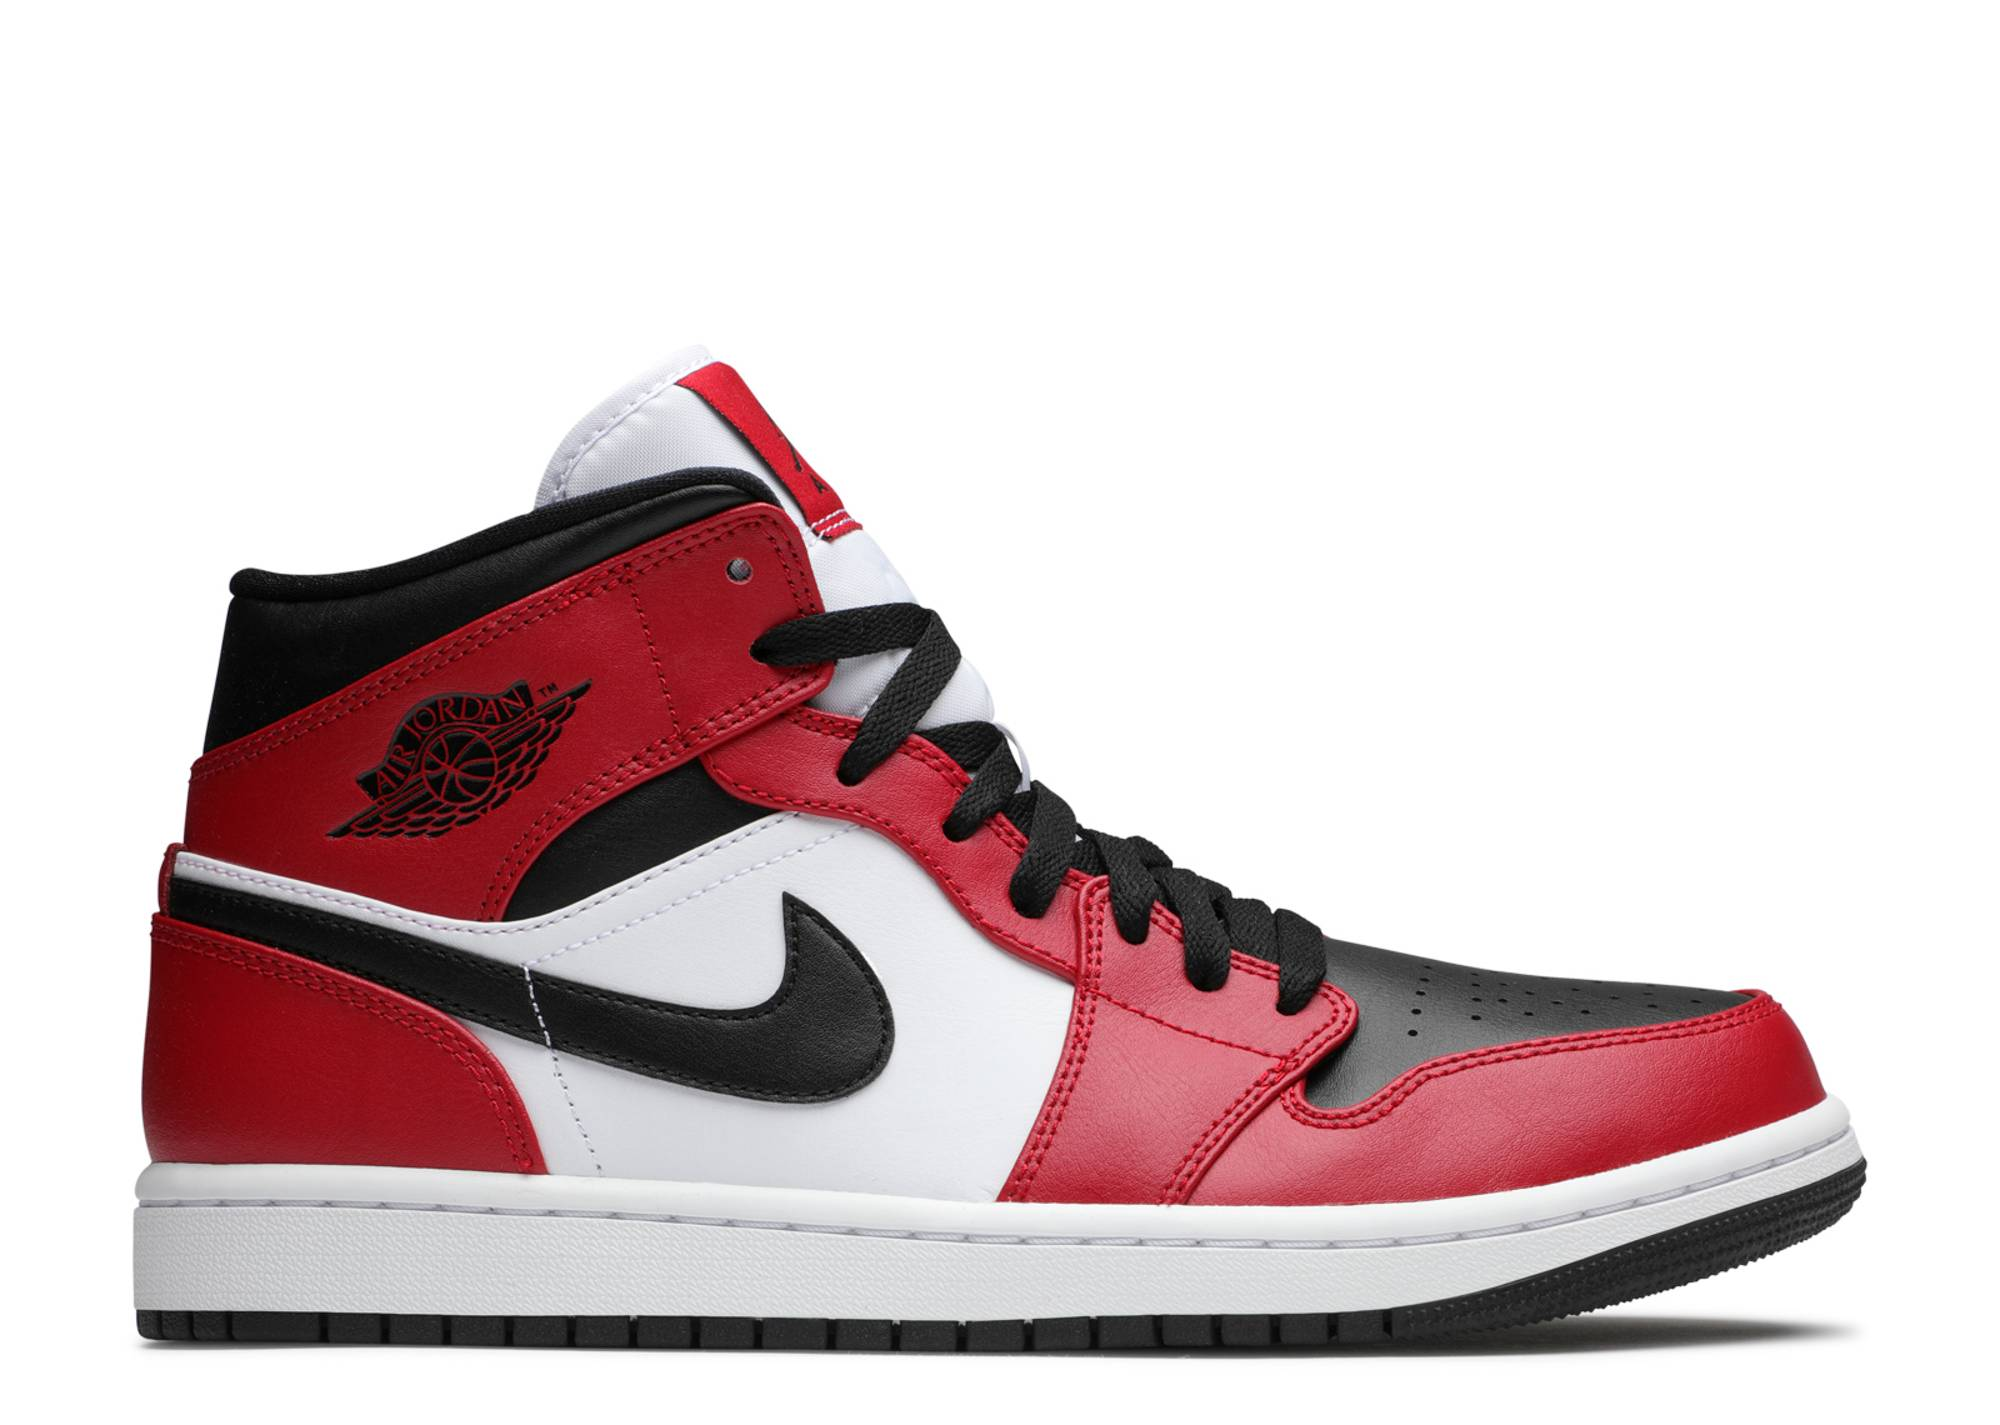 obispo ellos basura  Air Jordan 1 Mid 'Chicago Black Toe' - Air Jordan - 554724 069 - black/gym  red/white | Flight Club